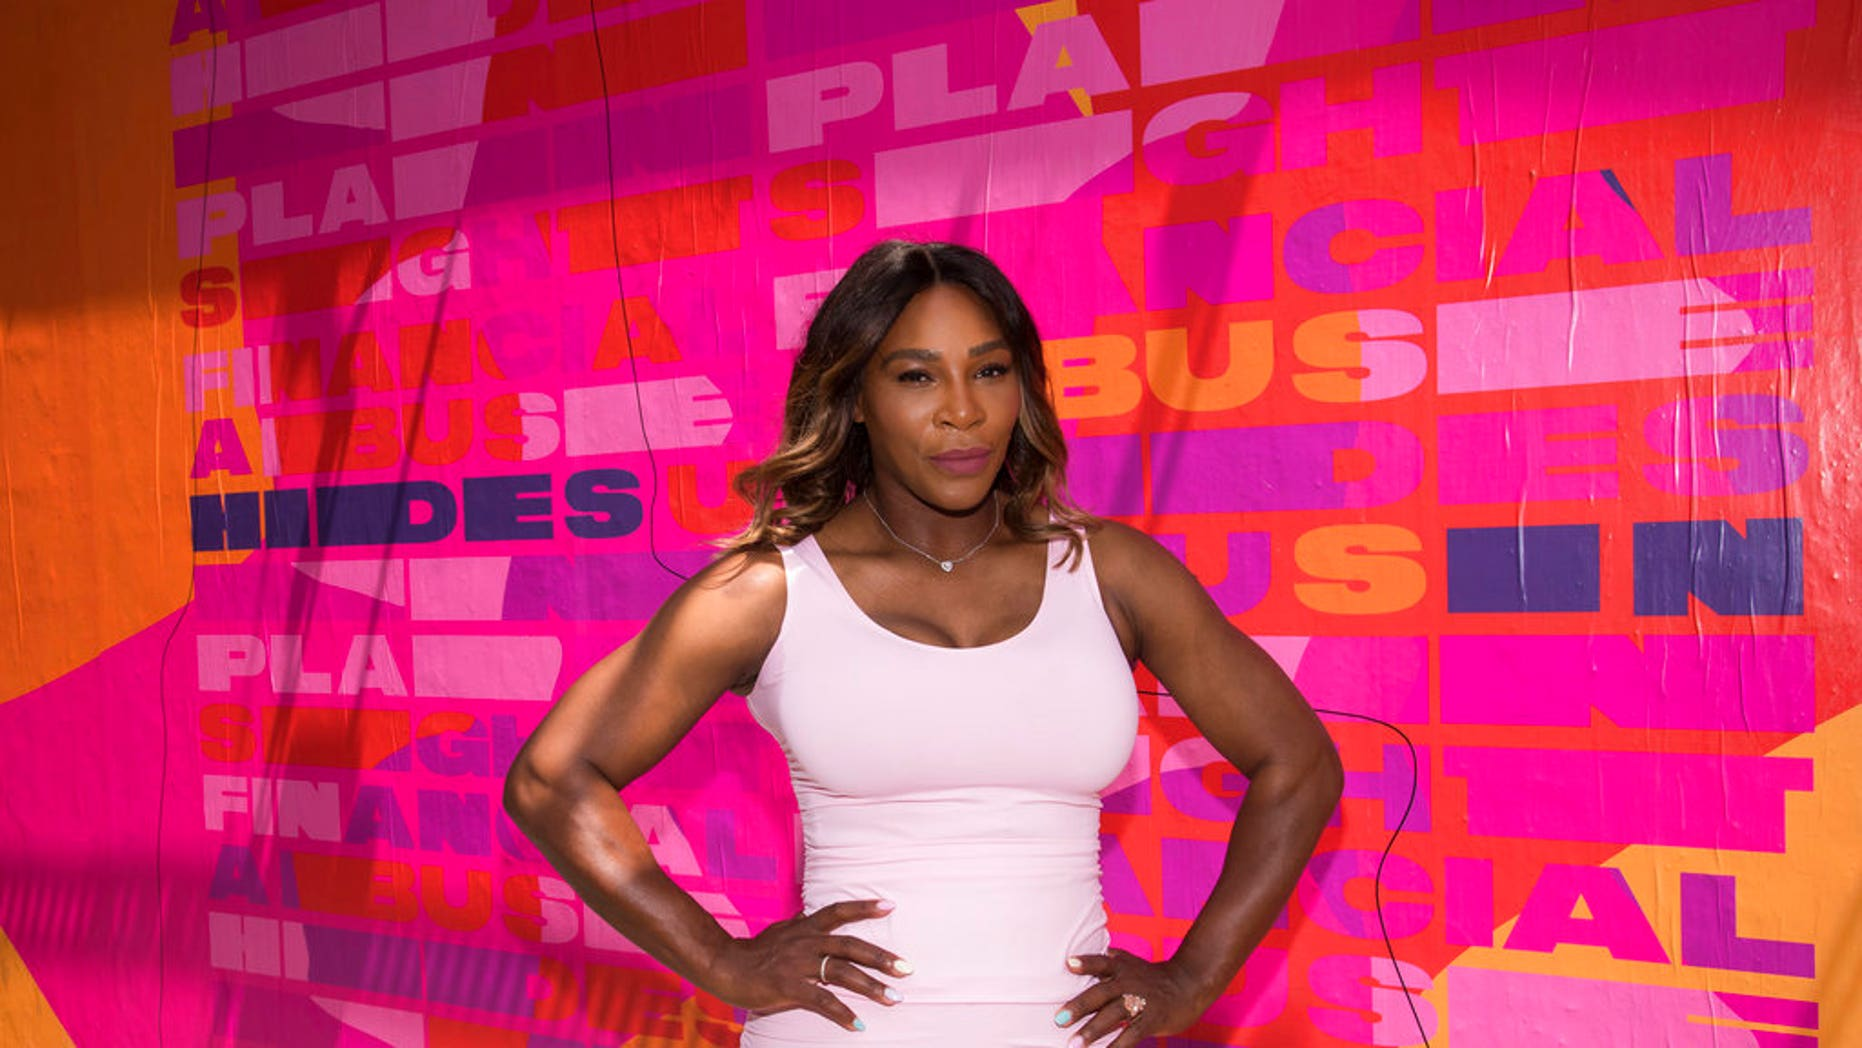 Serena Williams, pictured at an event on June 20 in New York, could receive a seeding boost from the U.S. Open after the USTA decided to change their rules for how they rank players if they have taken time off for pregnancy